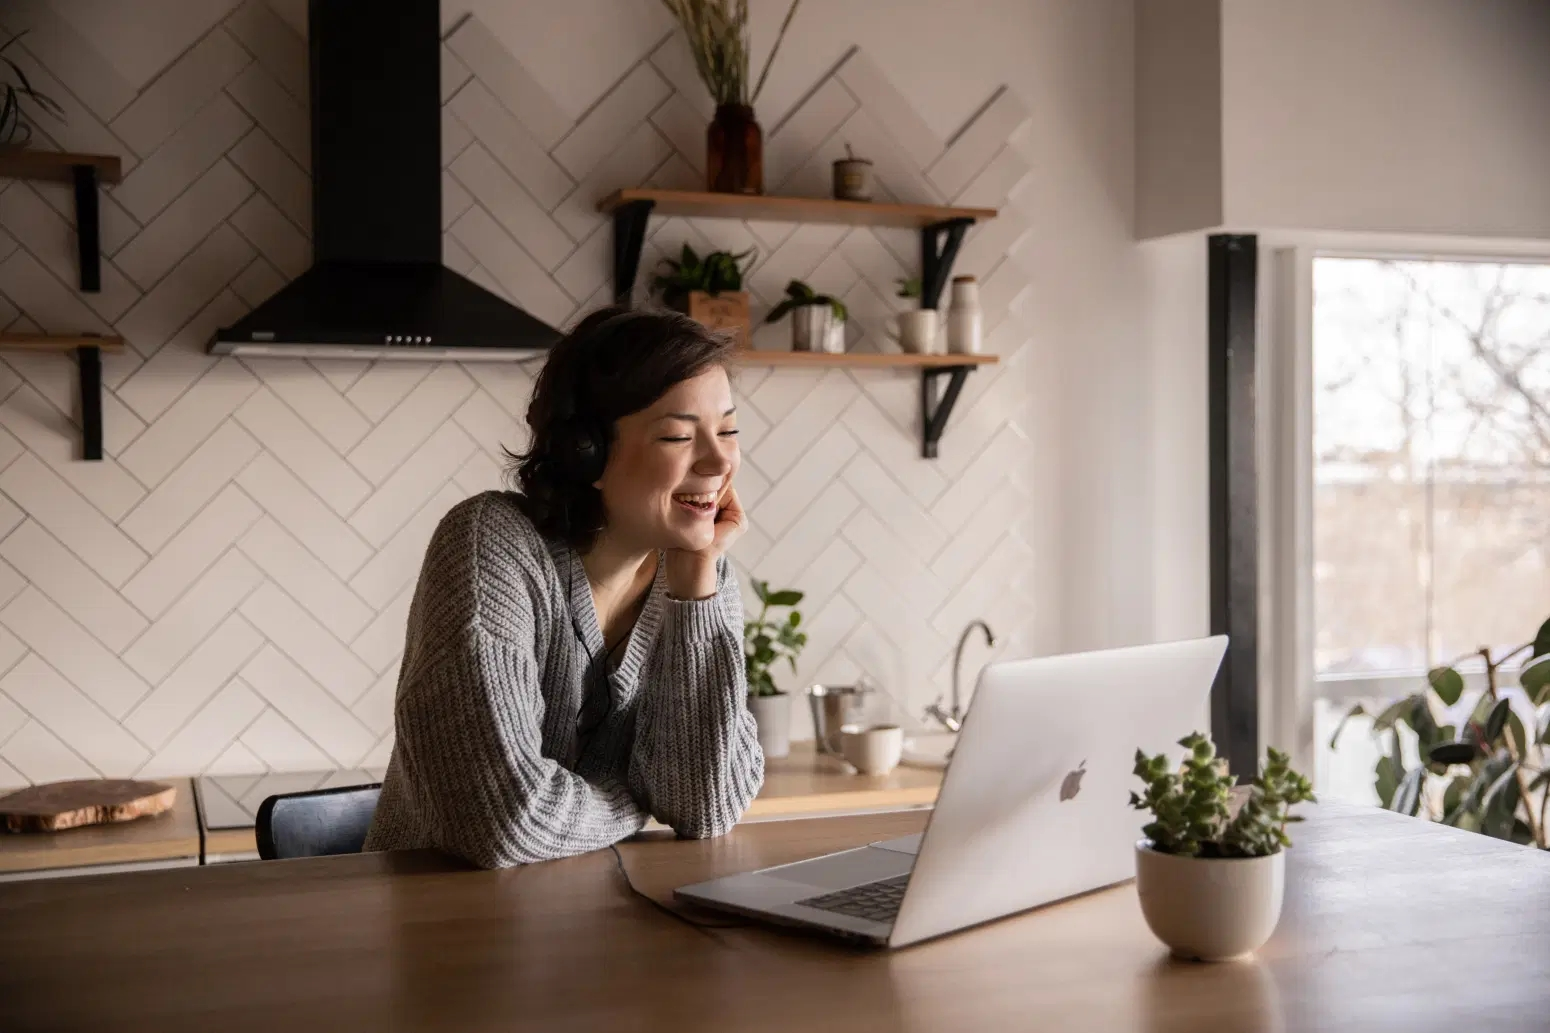 3 Tips for Starting a New Leadership Role Remotely